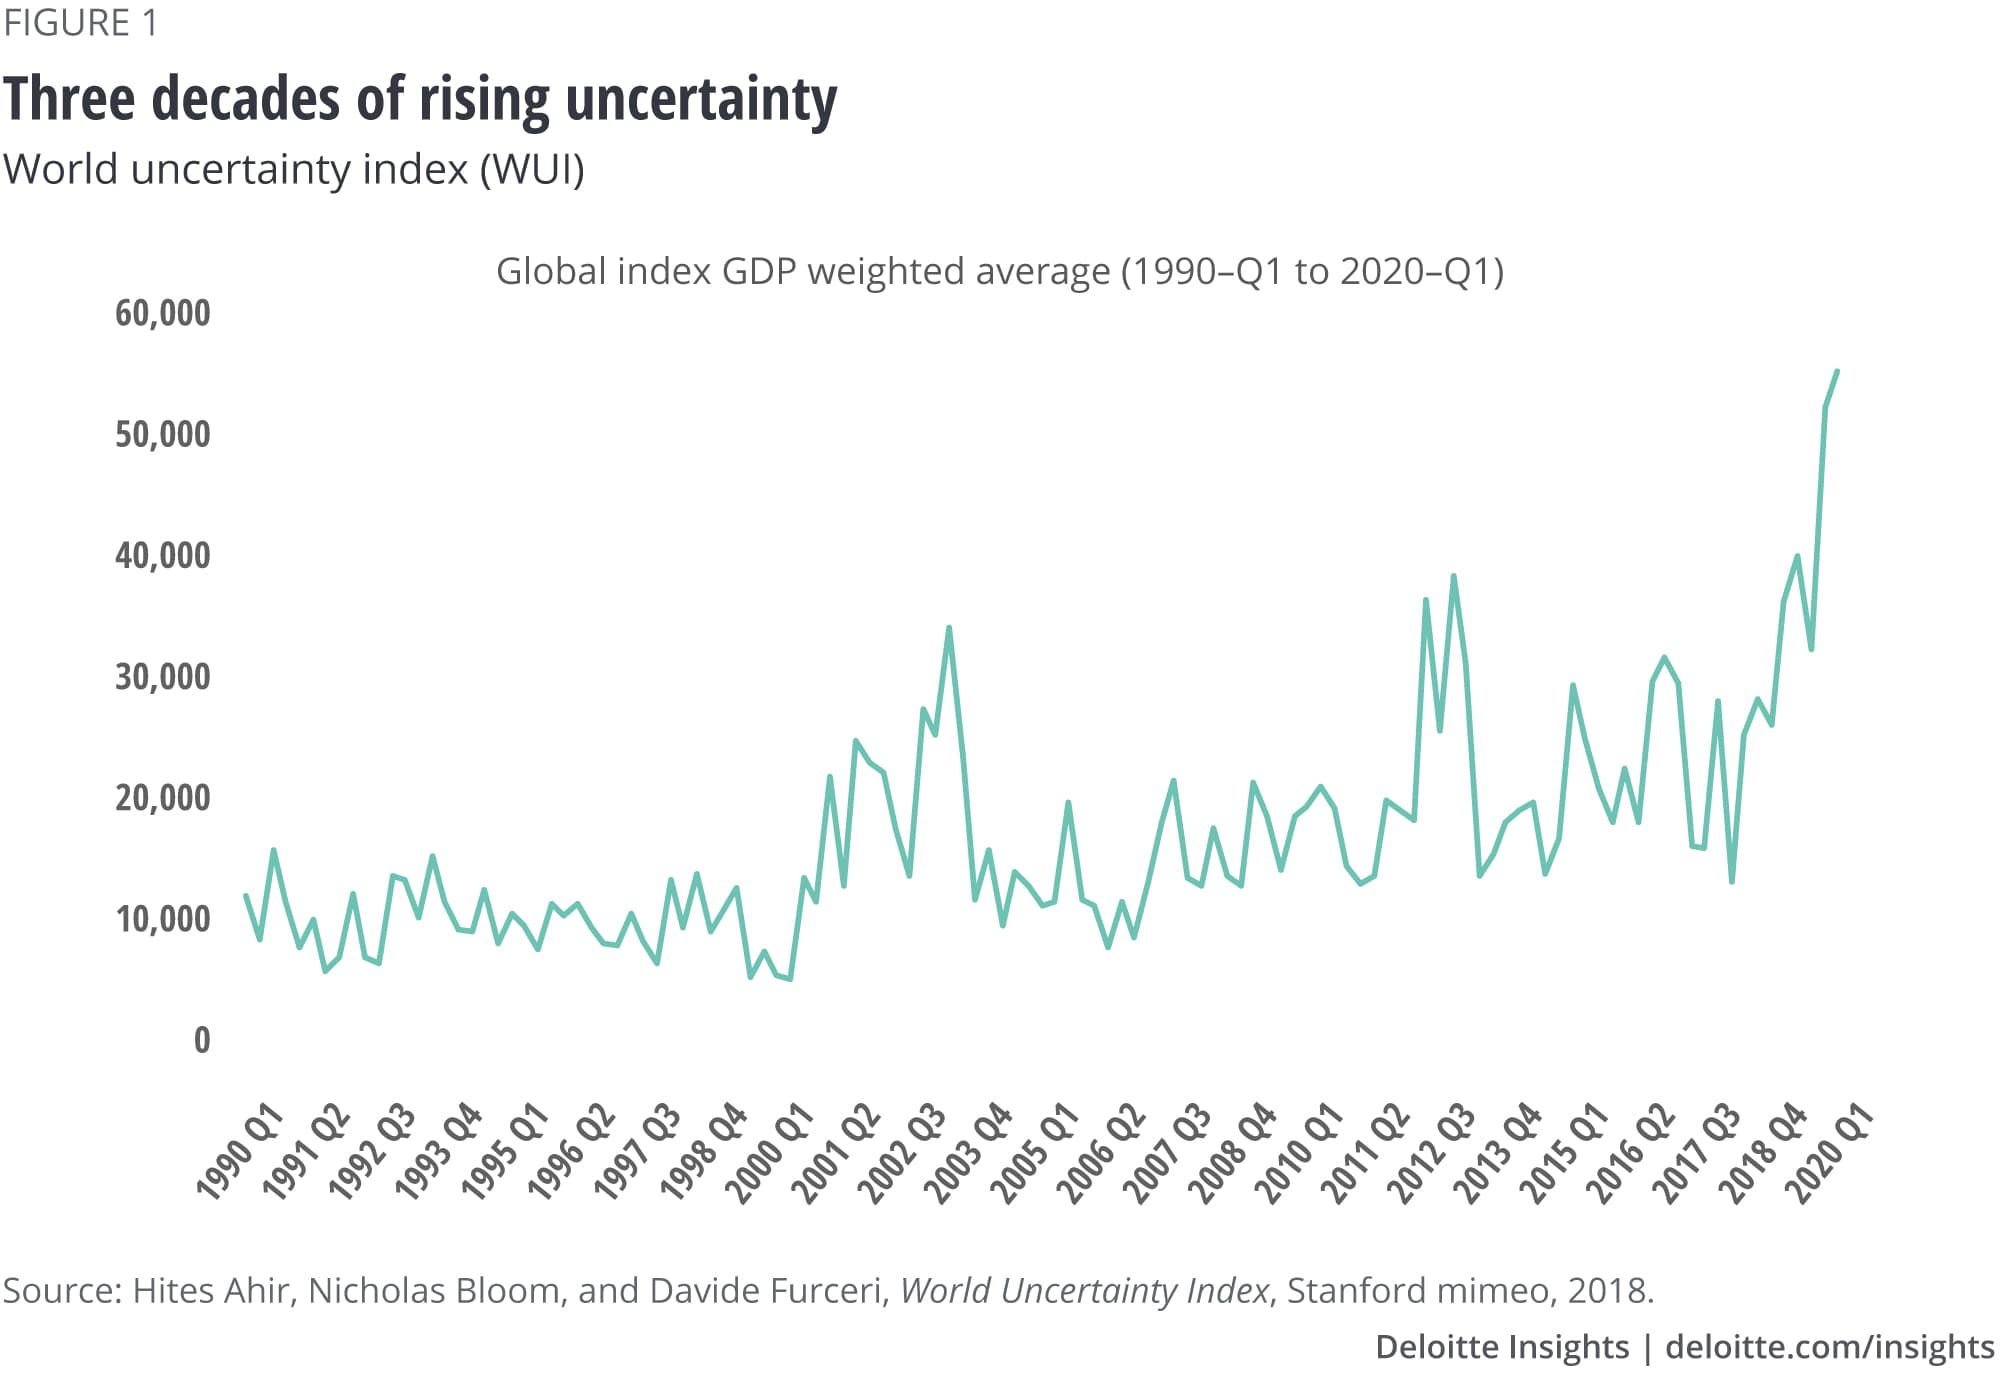 Figure 1. Three decades of rising uncertainty